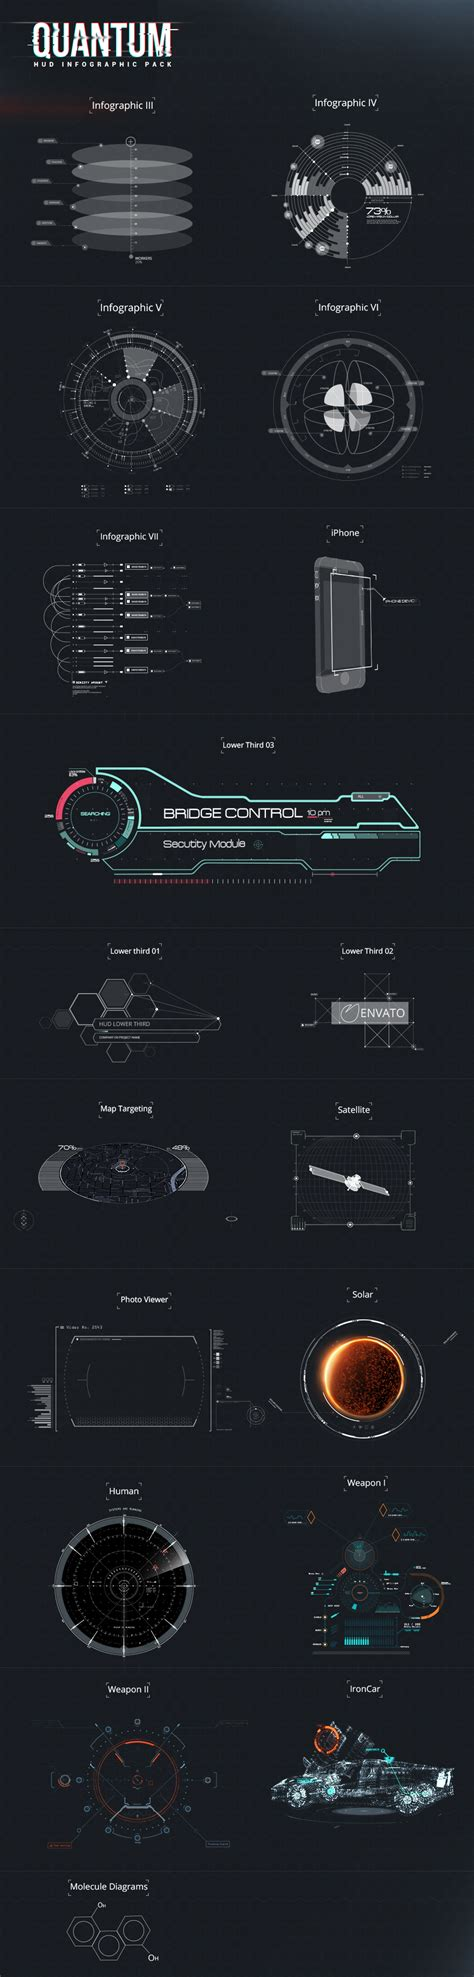 after effects template free phantom hud infographic quantum hud infographic after effects project videohive